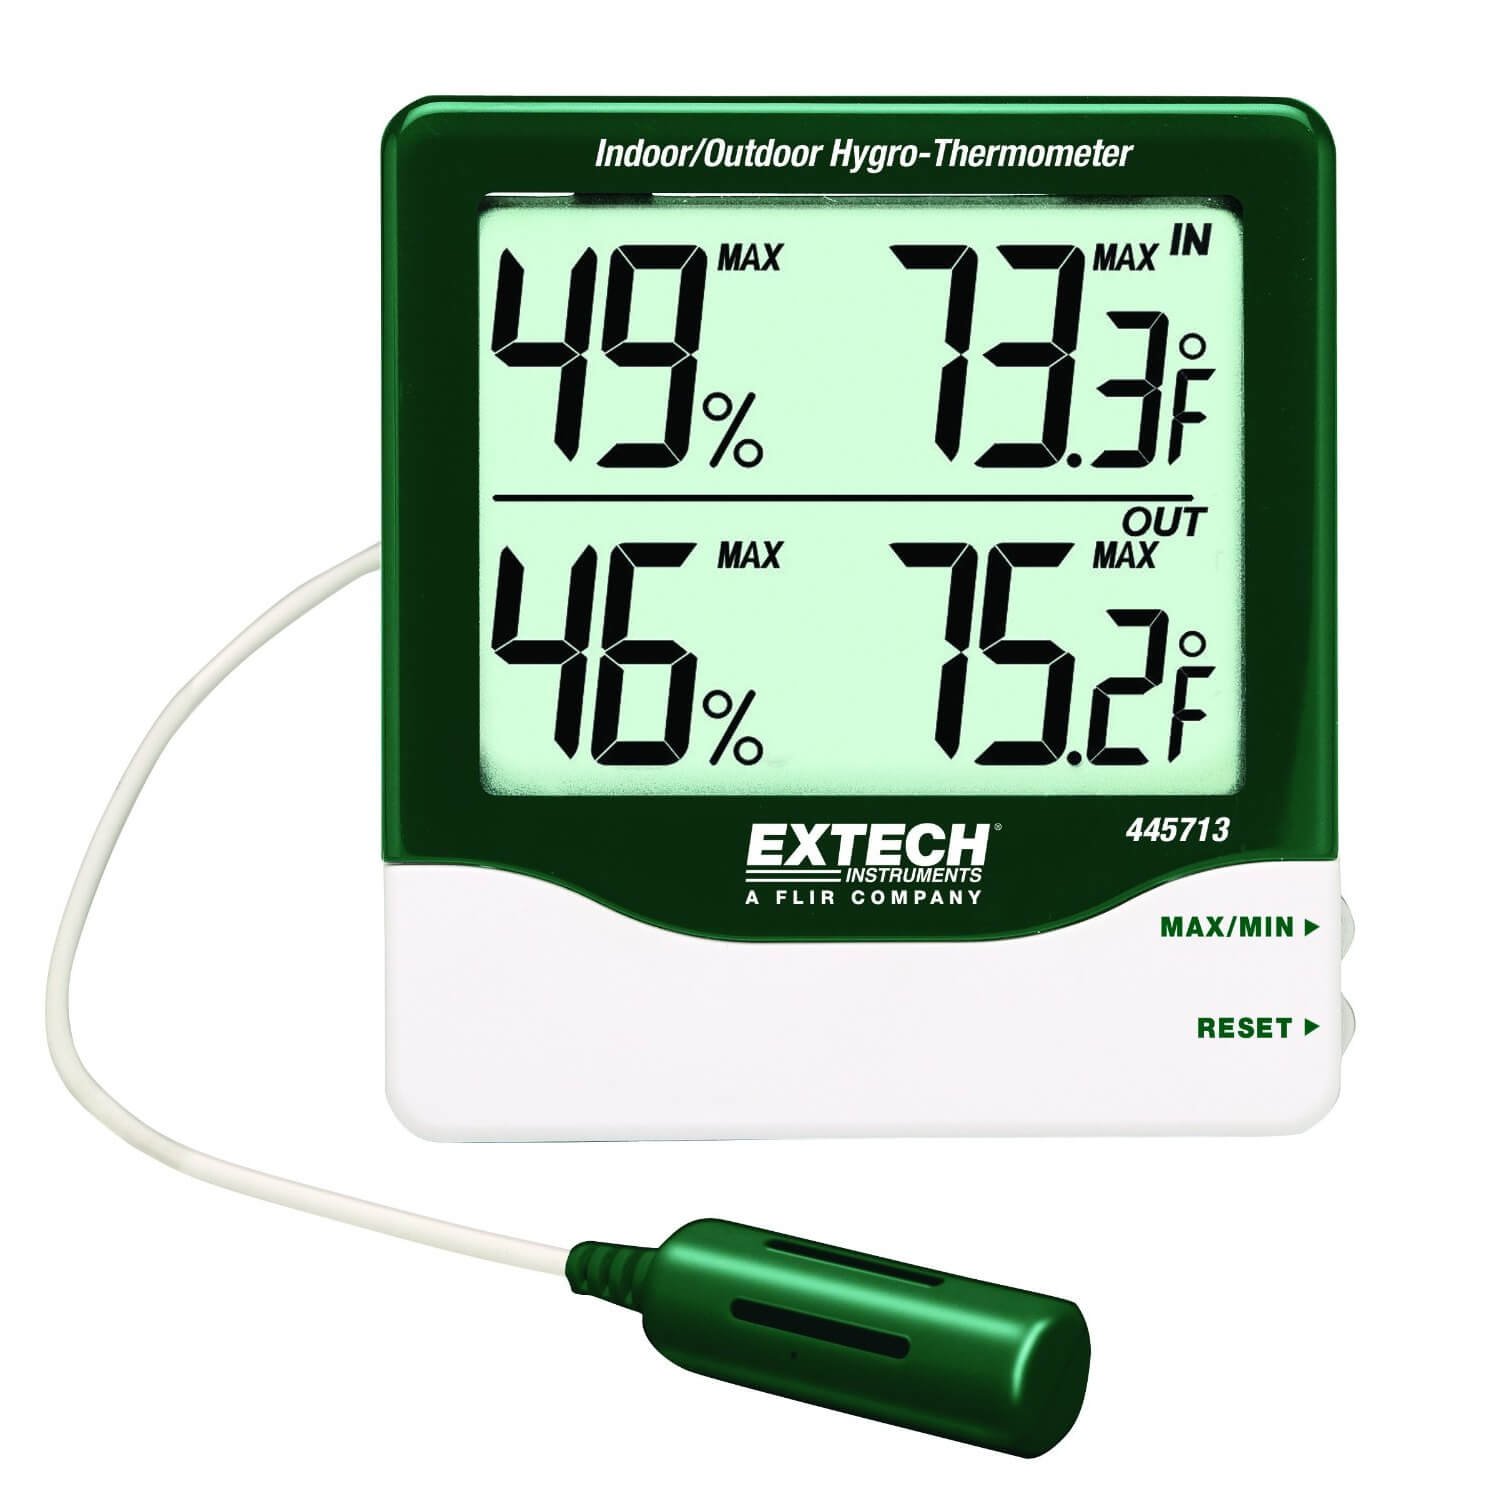 Extech 445713 Indoor-Outdoor Hygro-Thermometer with Big Digit Display